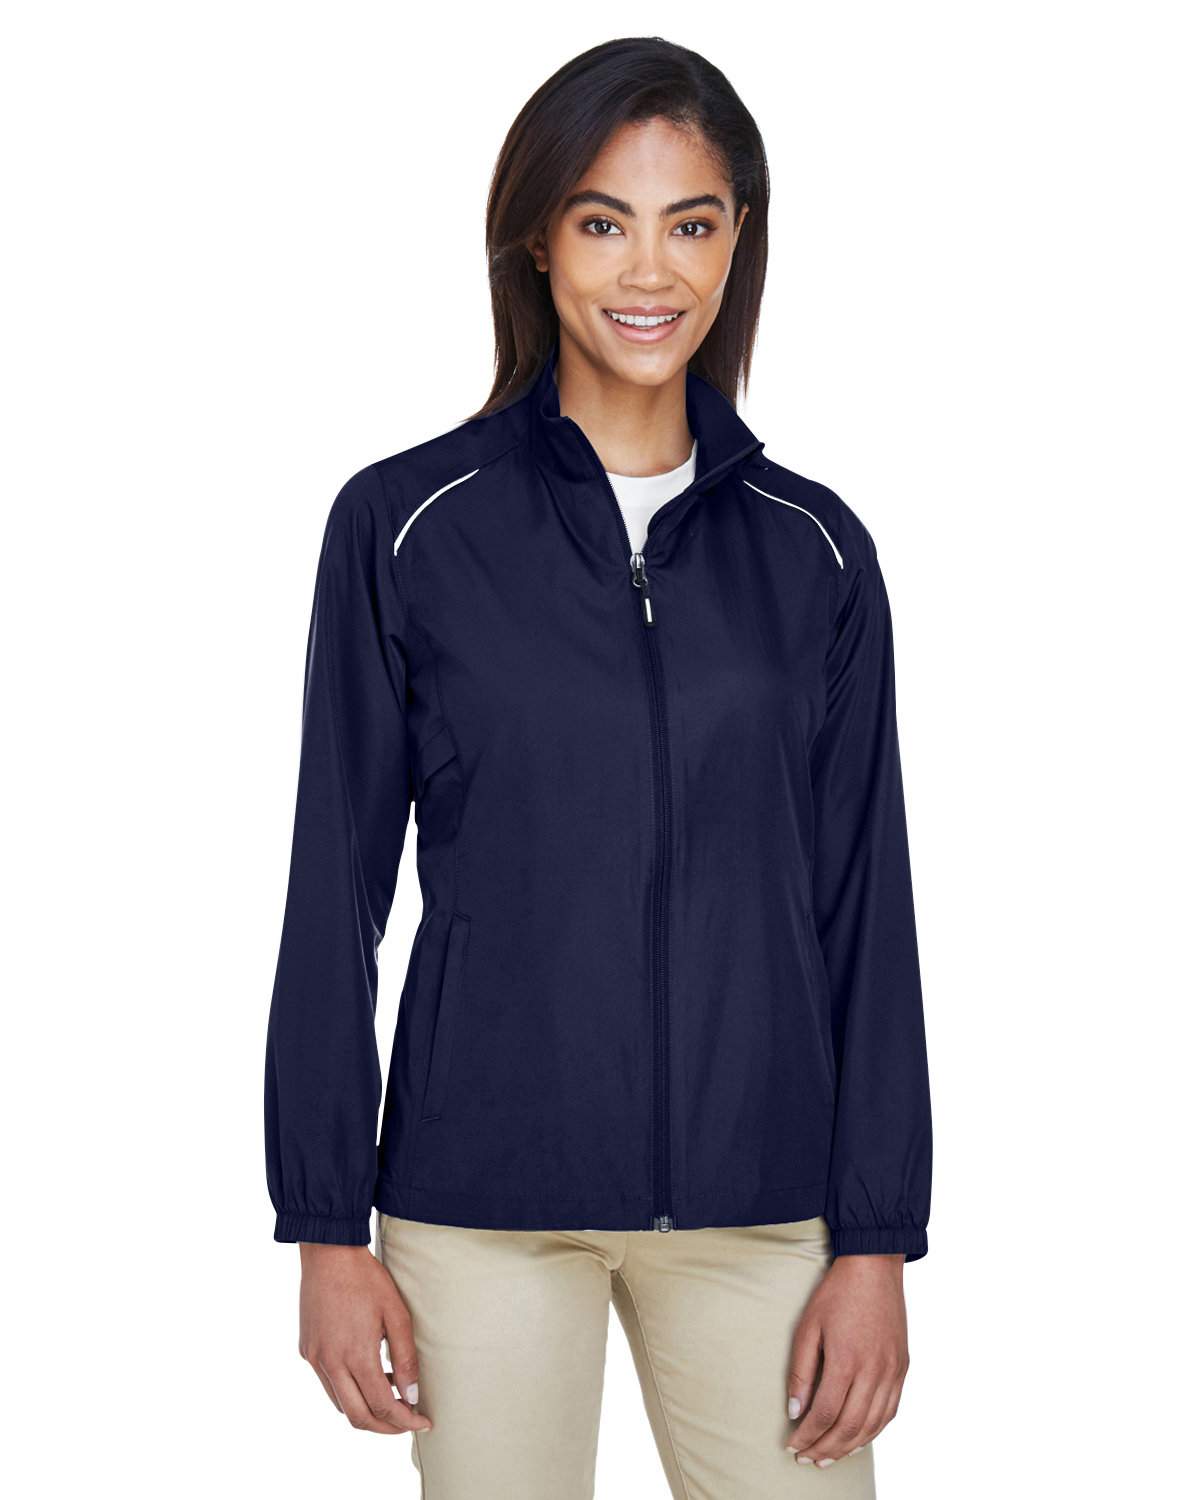 Core 365 Ladies' Motivate Unlined Lightweight Jacket CLASSIC NAVY